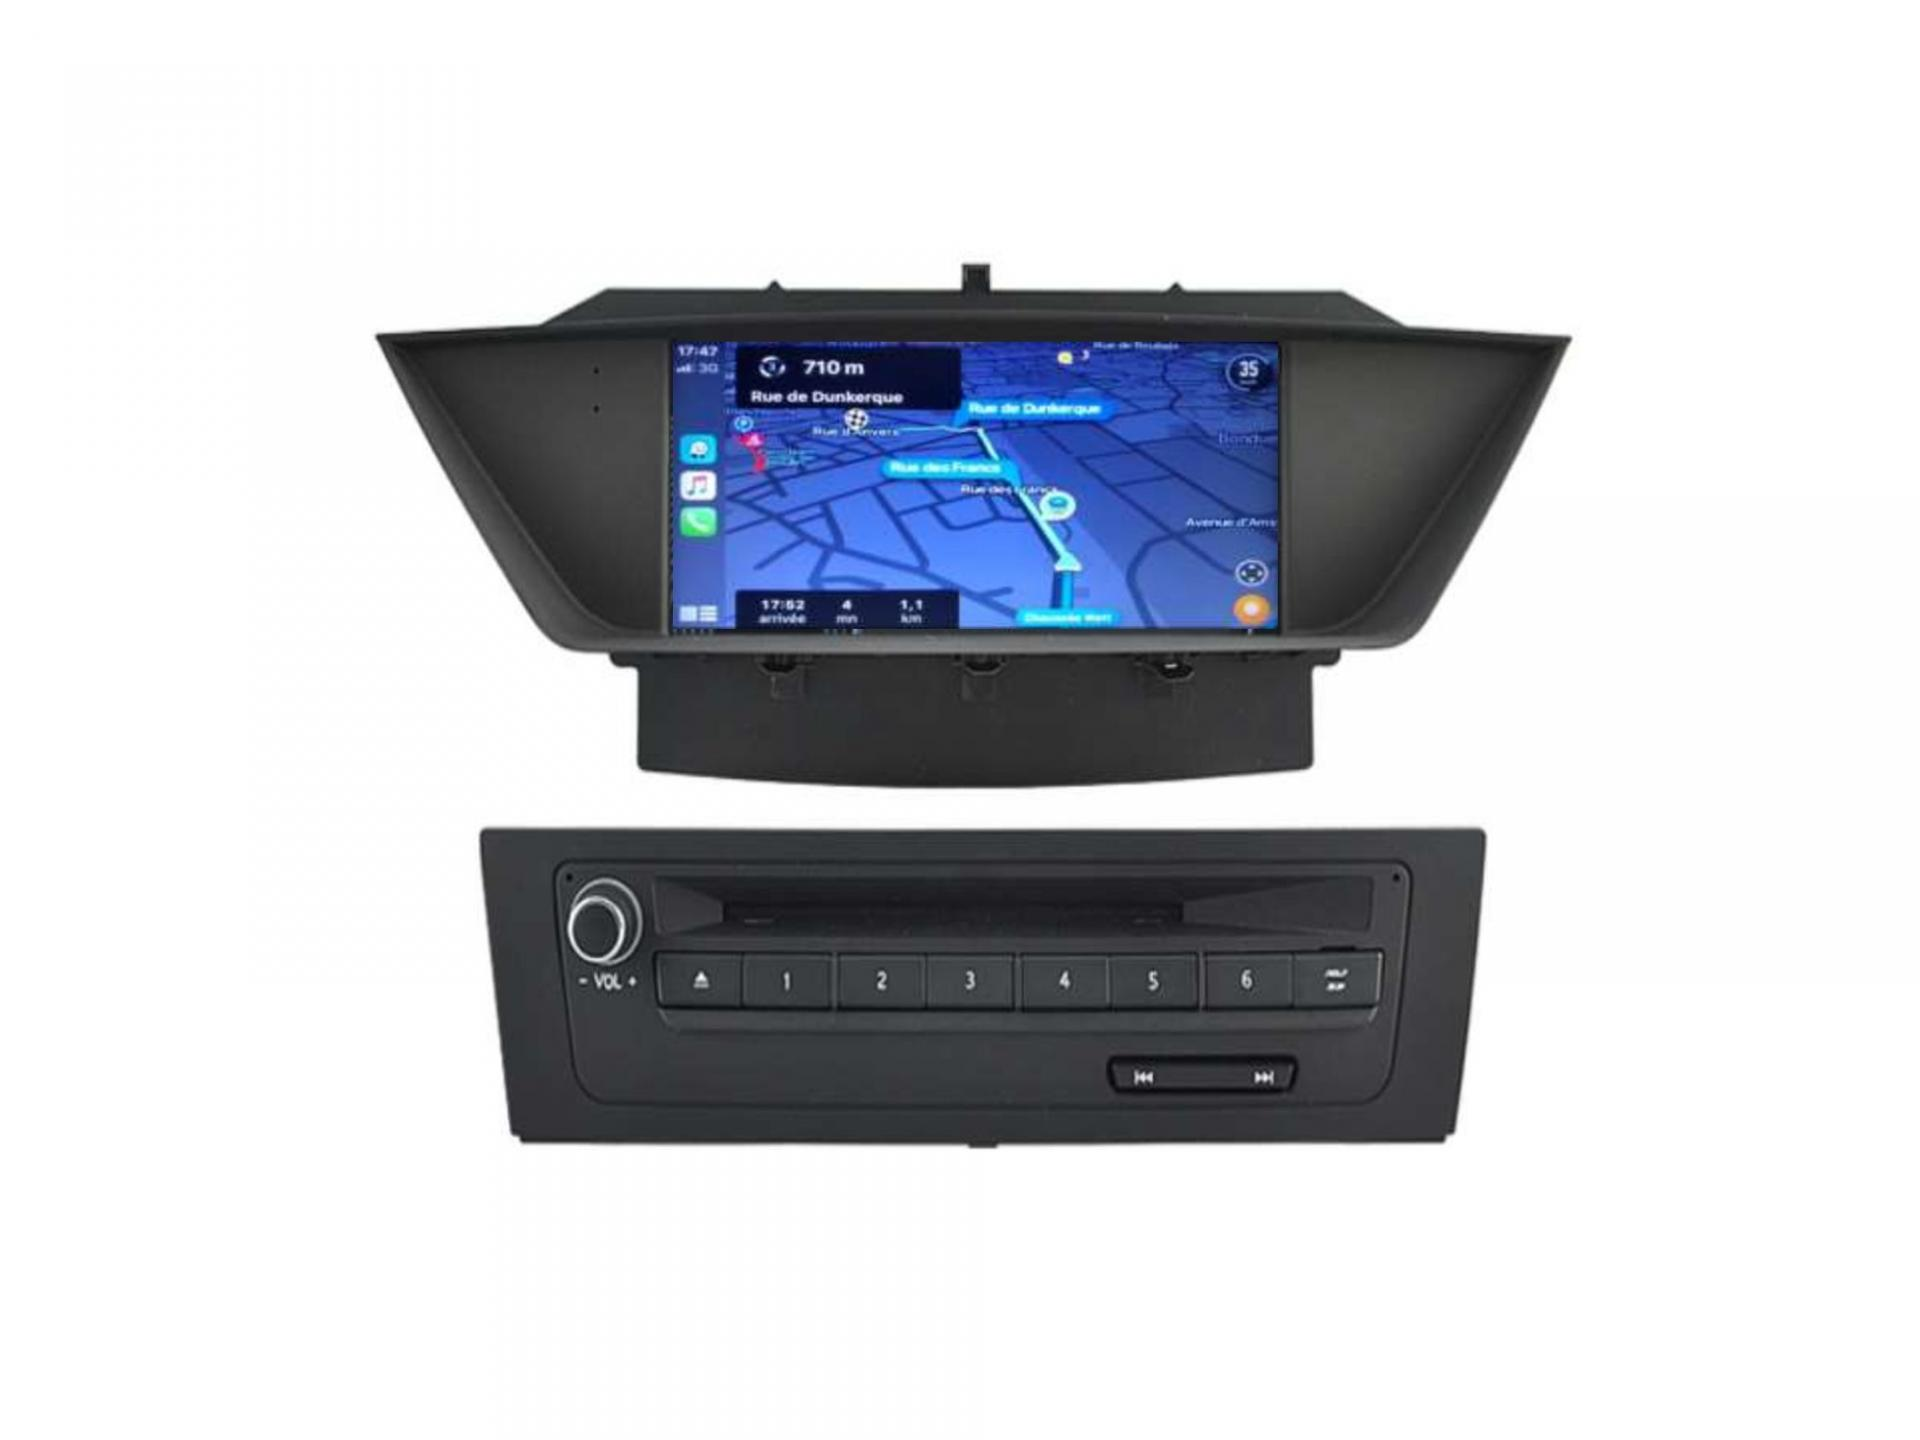 Autoradio gps carplay android auto bluetooth bmw x1 e84 4